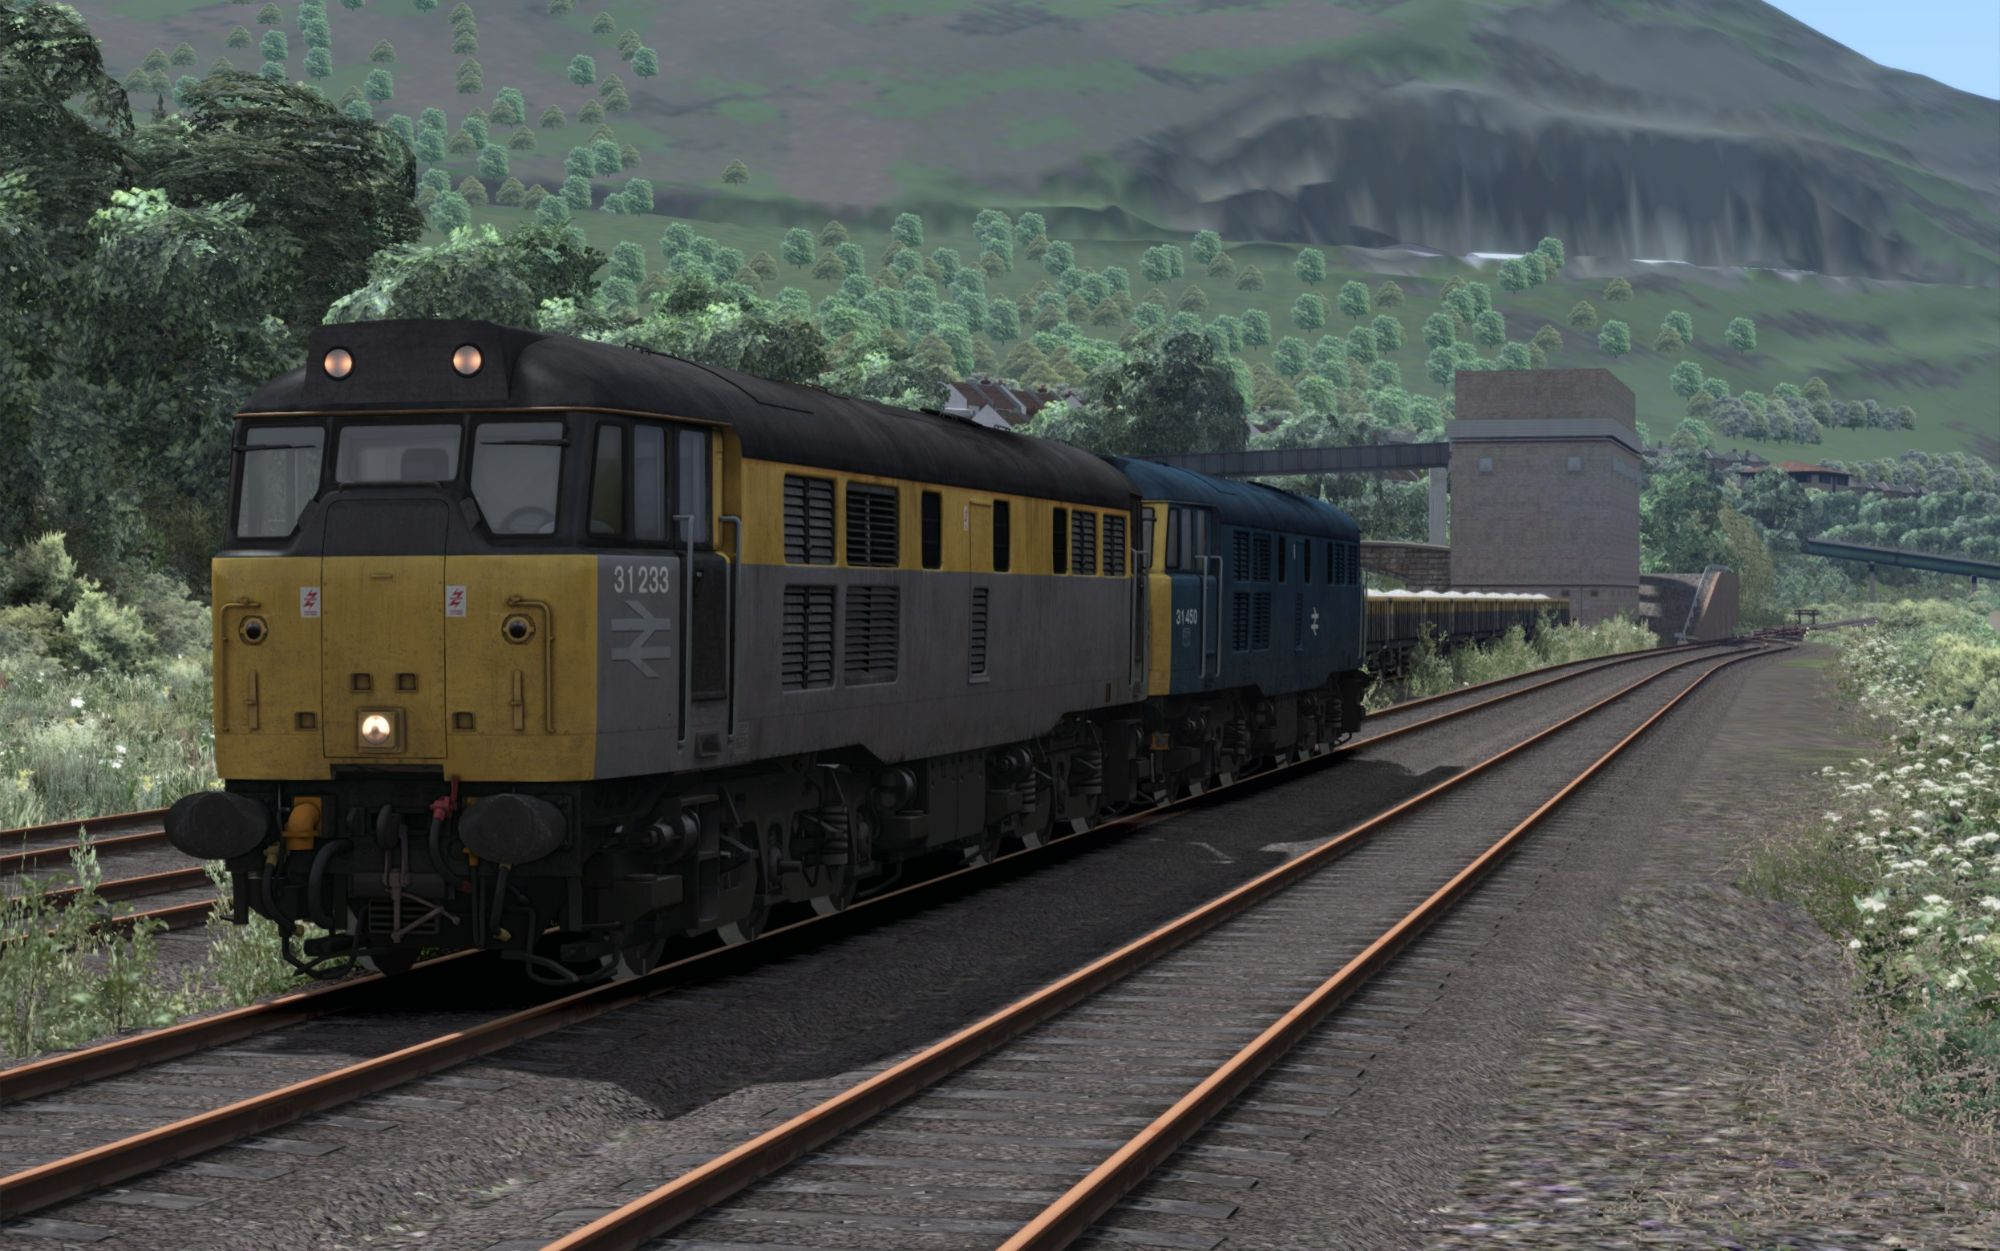 Image showing screenshot of the 6F36 - 1301 Penmaenmawr Quarry to Edge Hill Sidings scenario